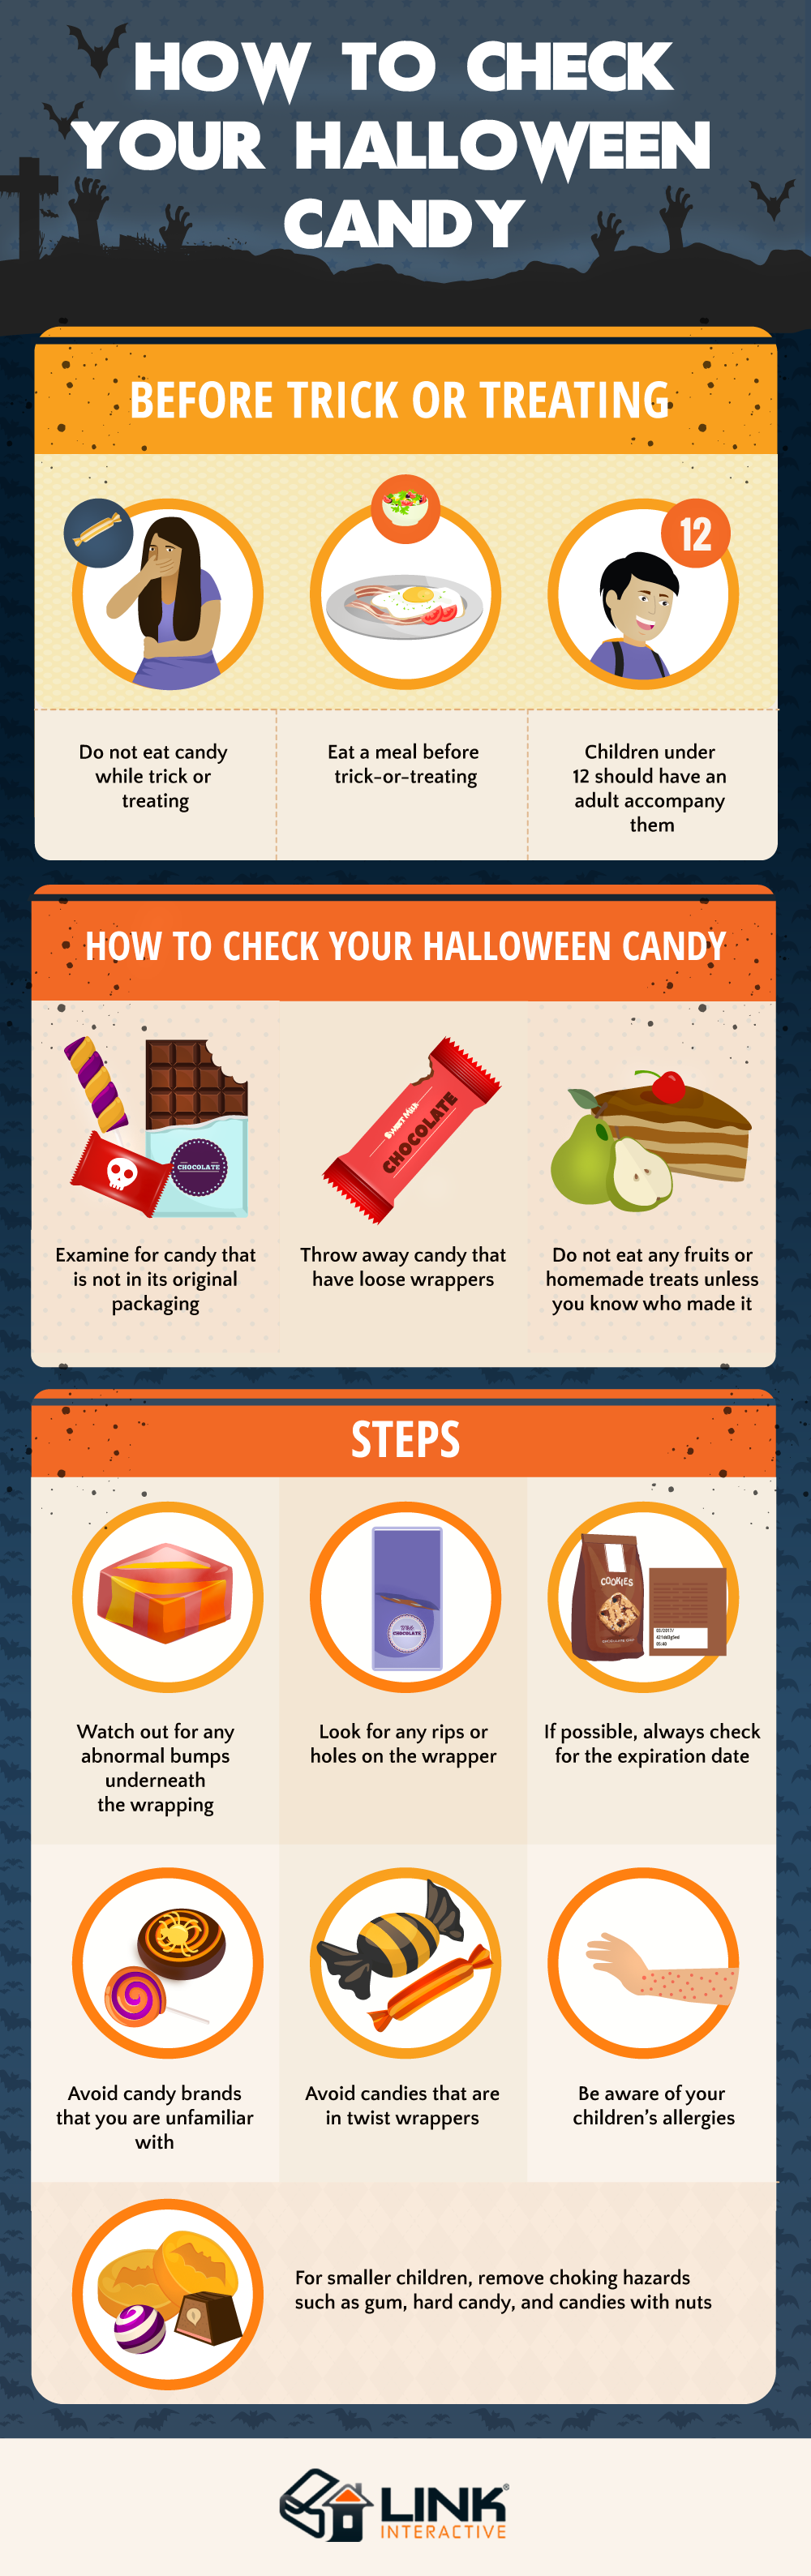 check_halloween_candy_infographic